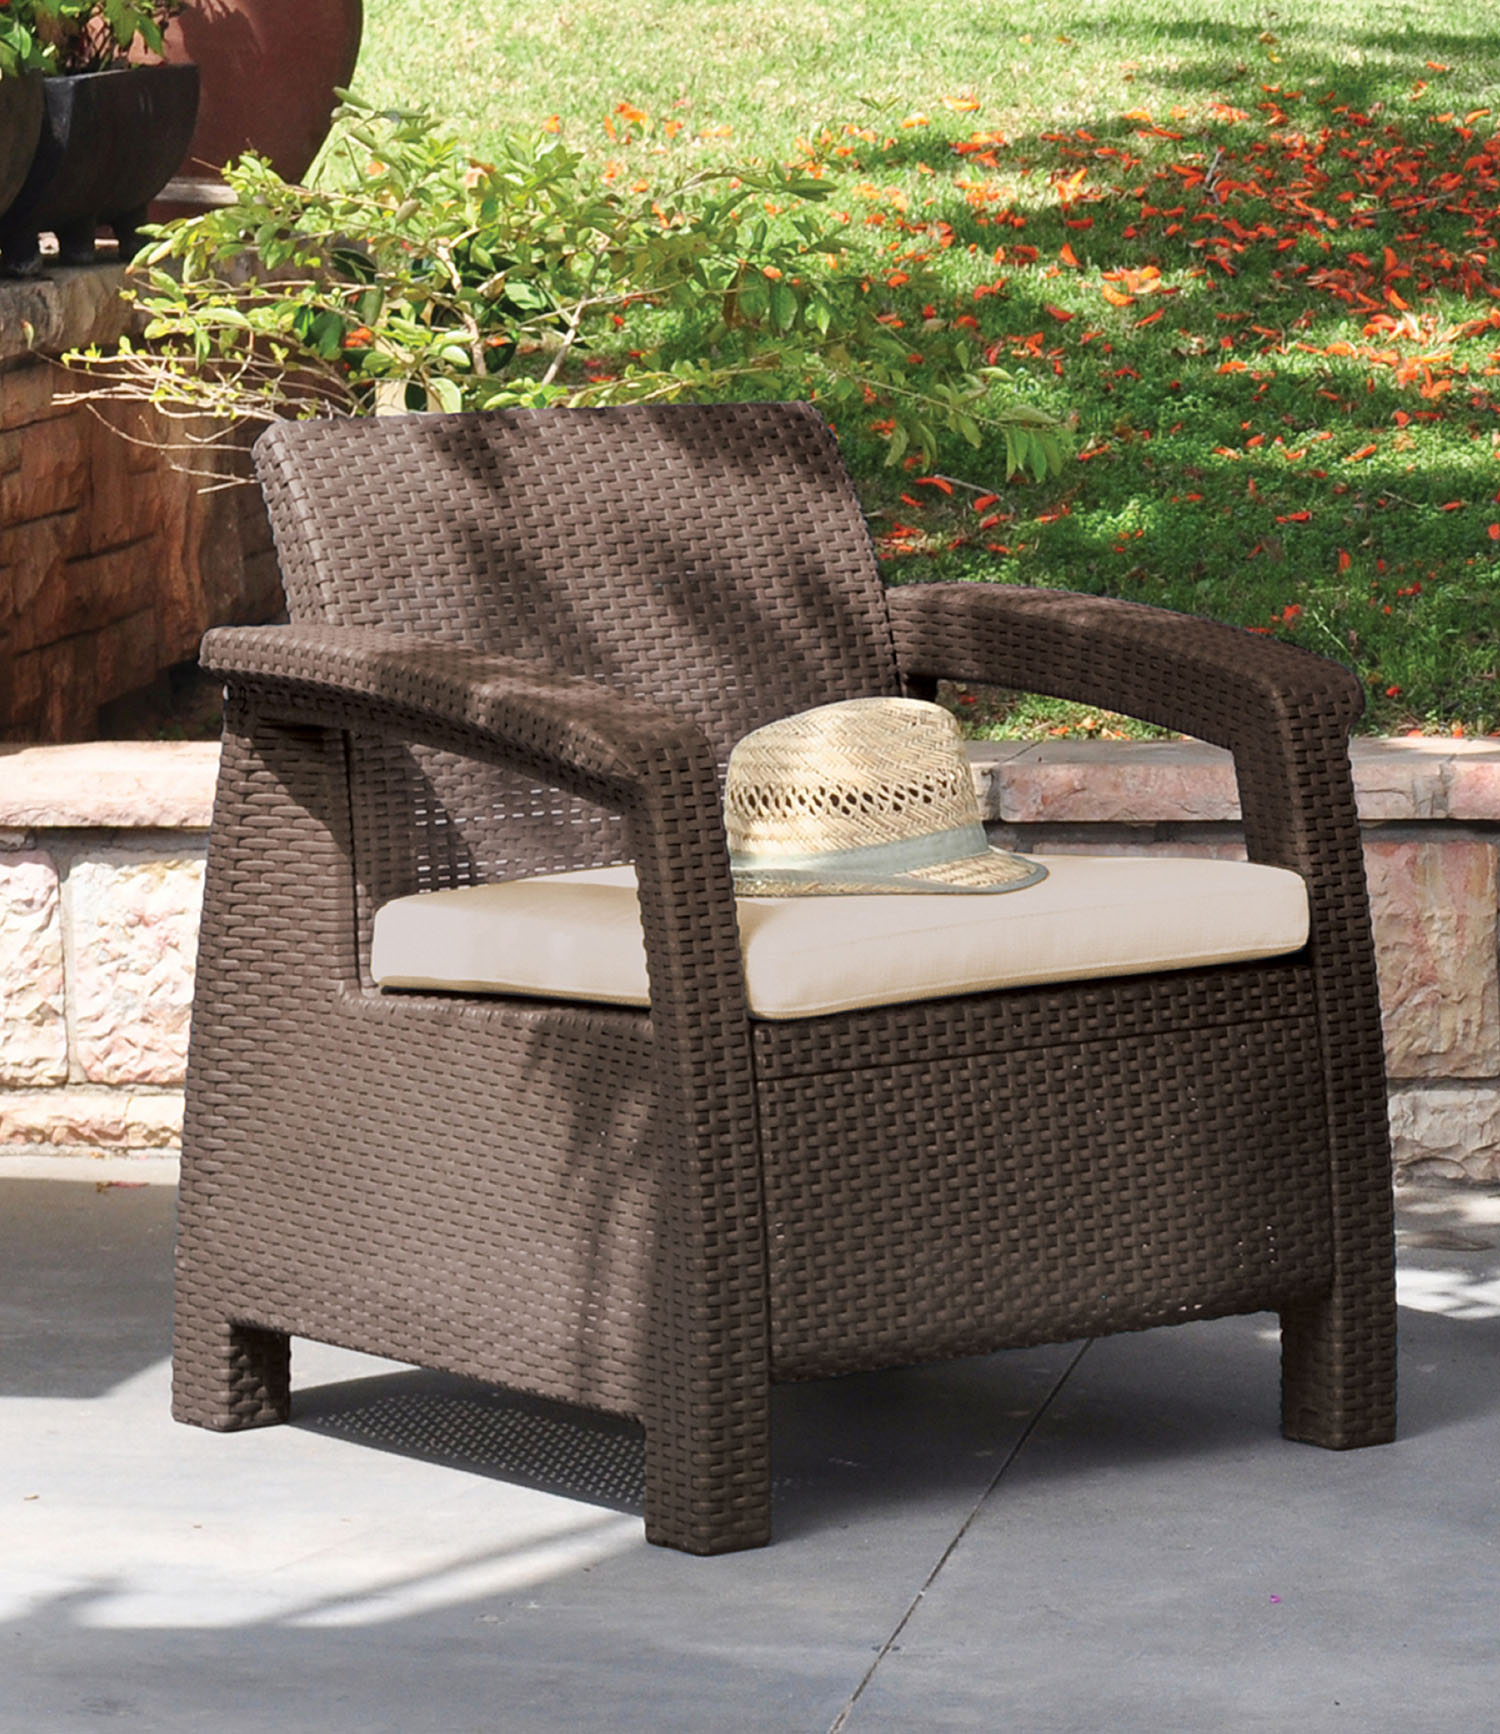 Keter Corfu Resin Armchair With Cushions, All Weather Plastic Patio  Furniture, Brown Rattan